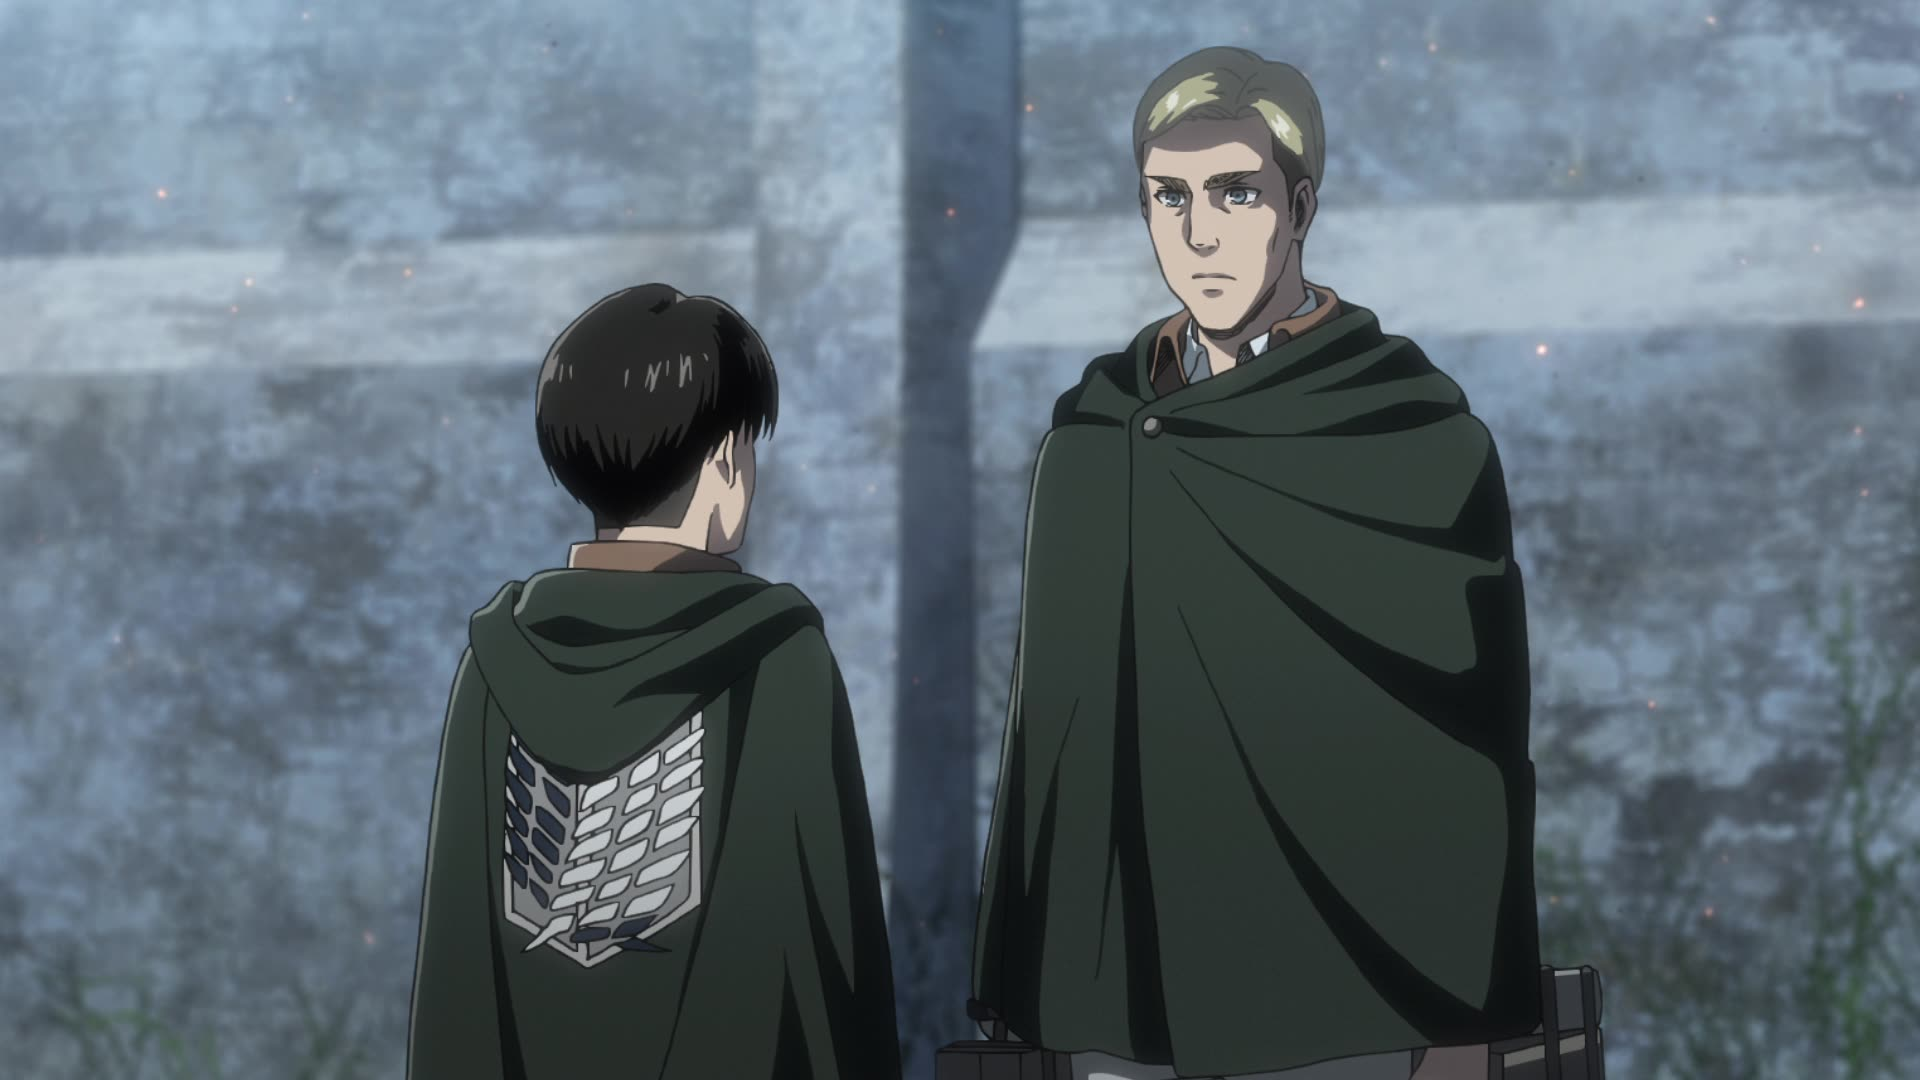 38b843a1 Attack on Titan Season 3 Episode 53, Perfect Game, - Watch on ...